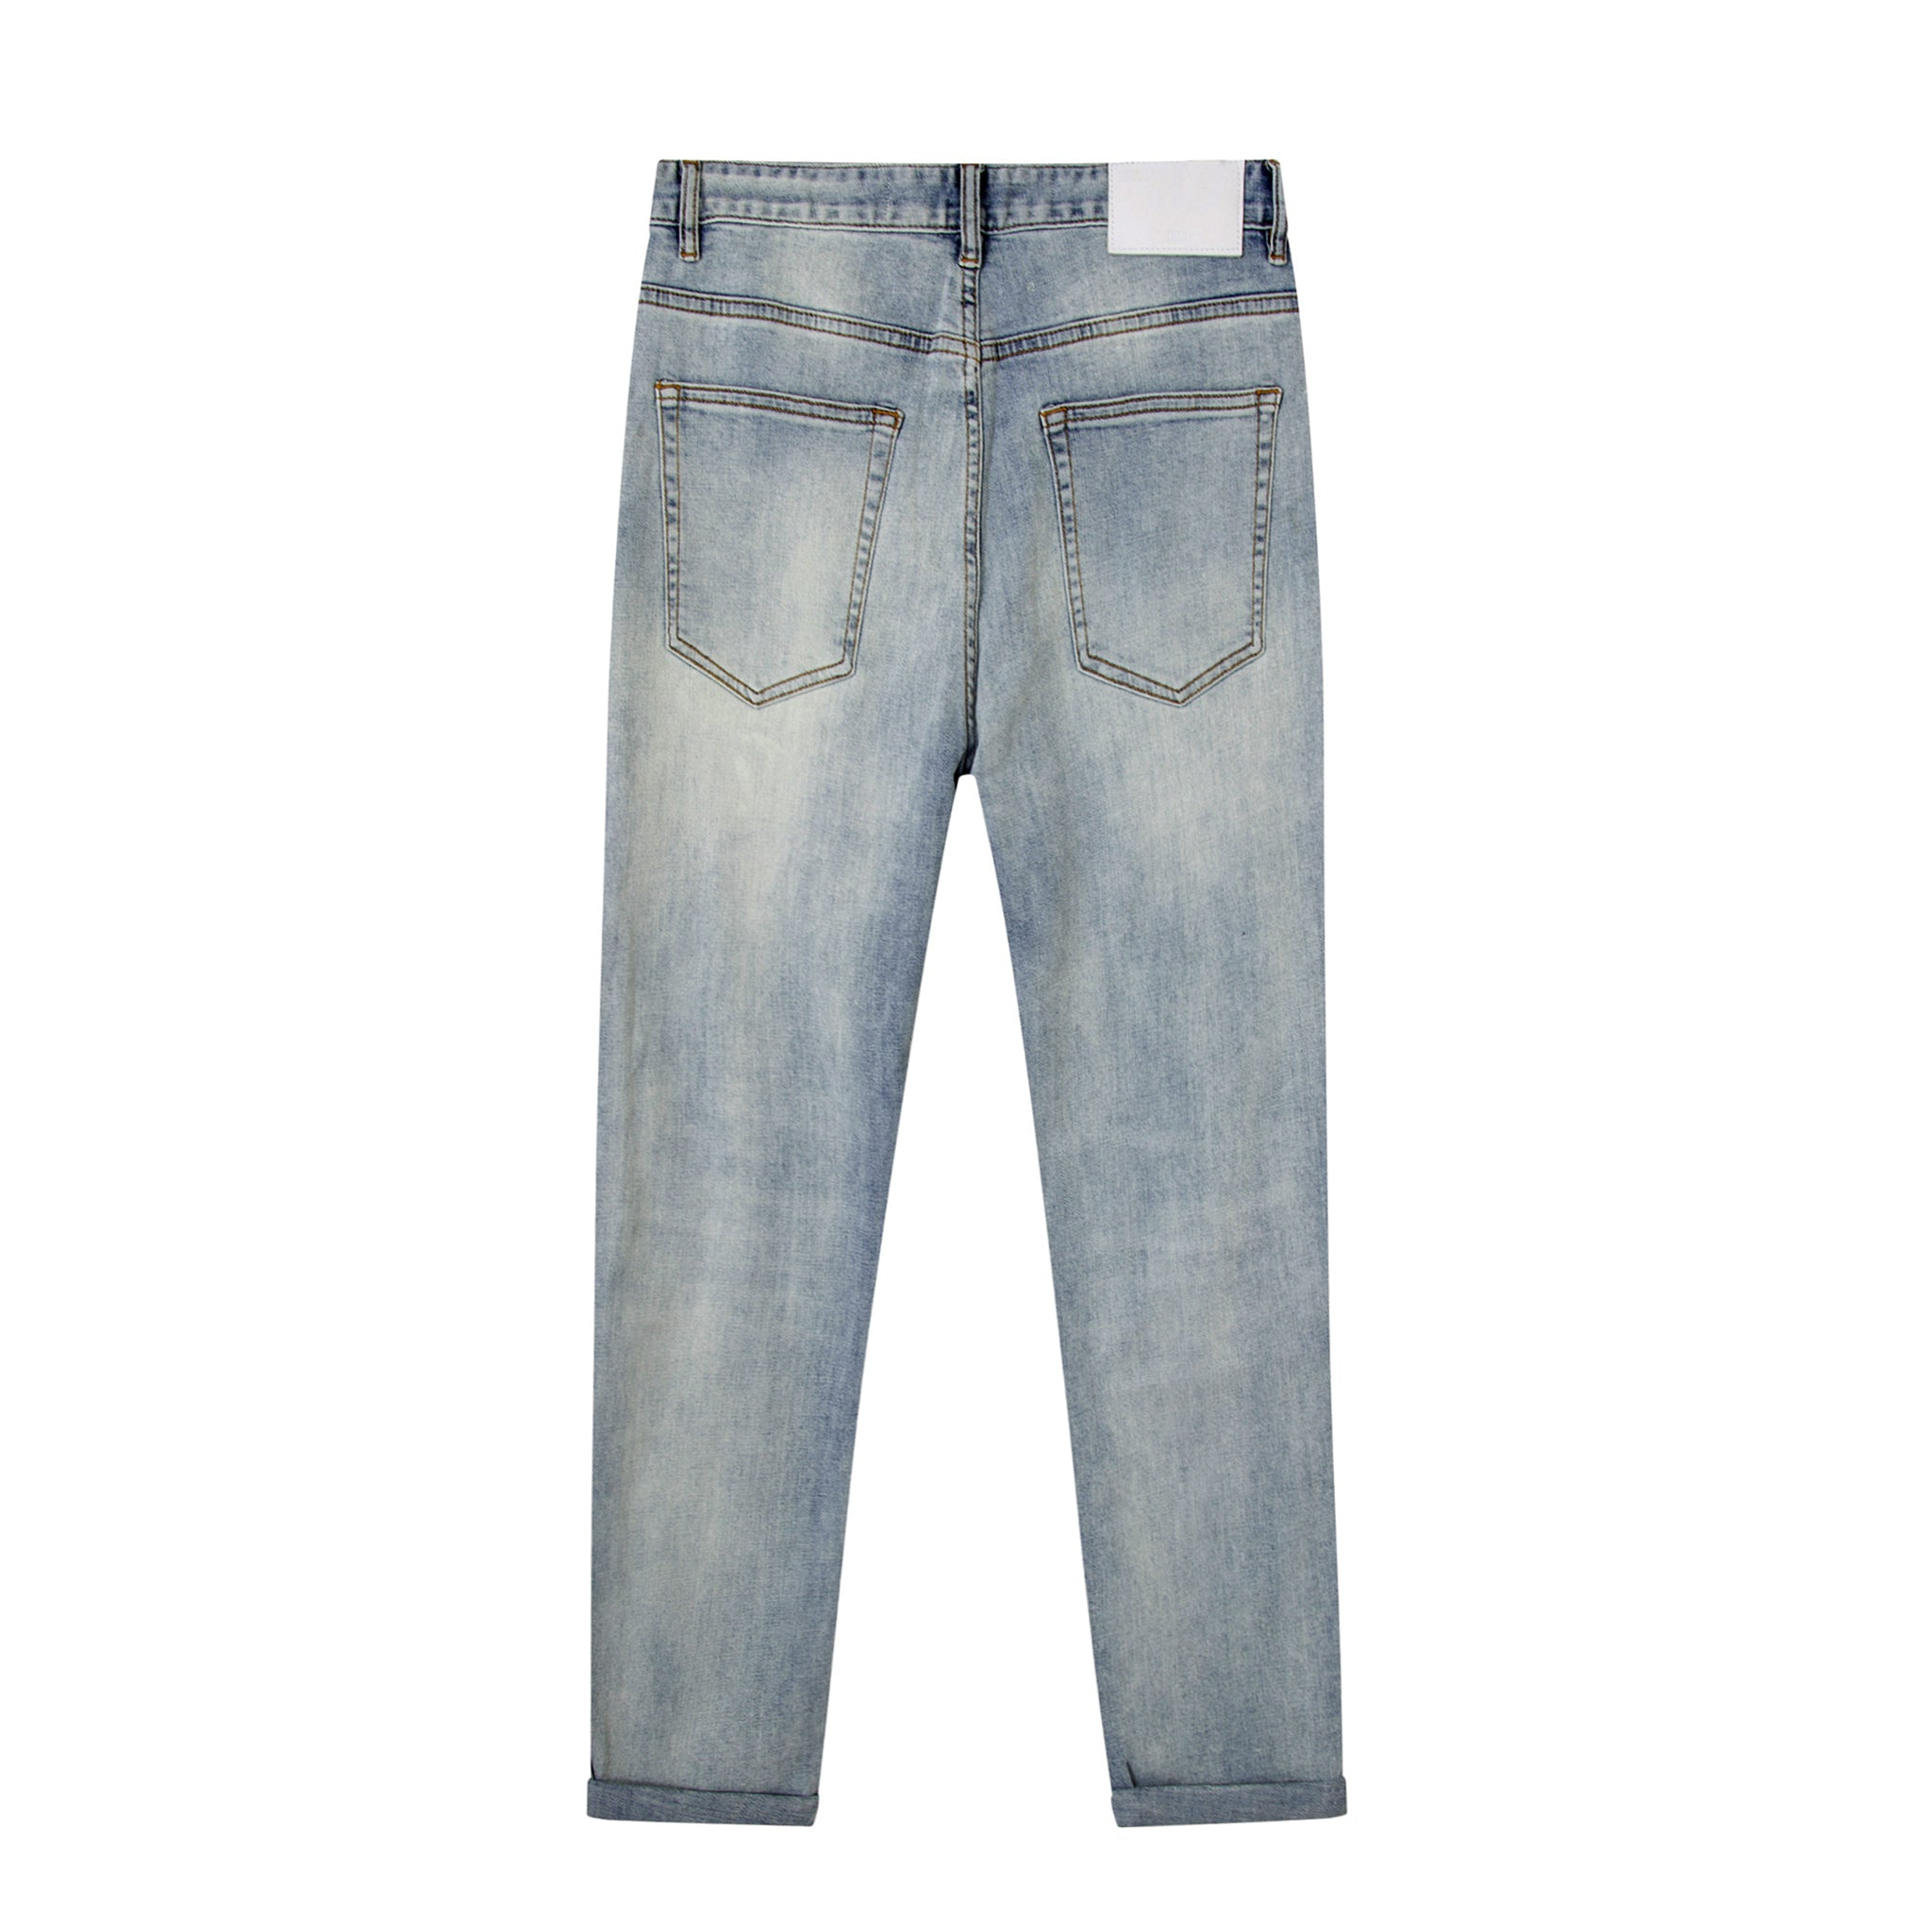 Classic Stone Wash Jeans- Faded